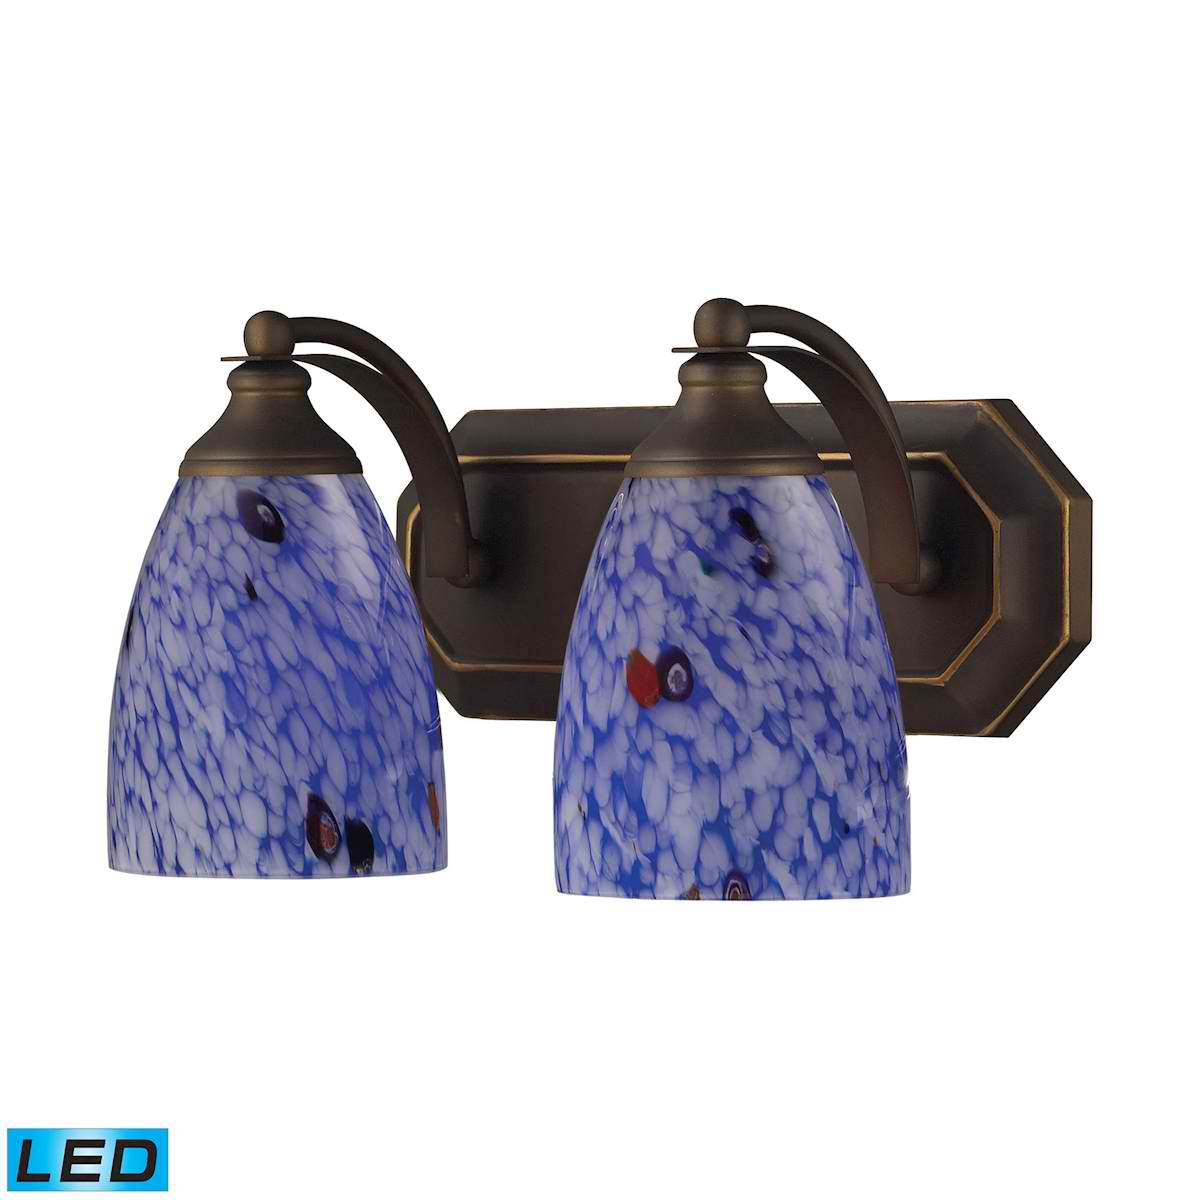 2 Light Vanity in Aged Bronze and Starburst Blue Glass - LED, 800 Lumens (1600 Lumens Total) with Fu